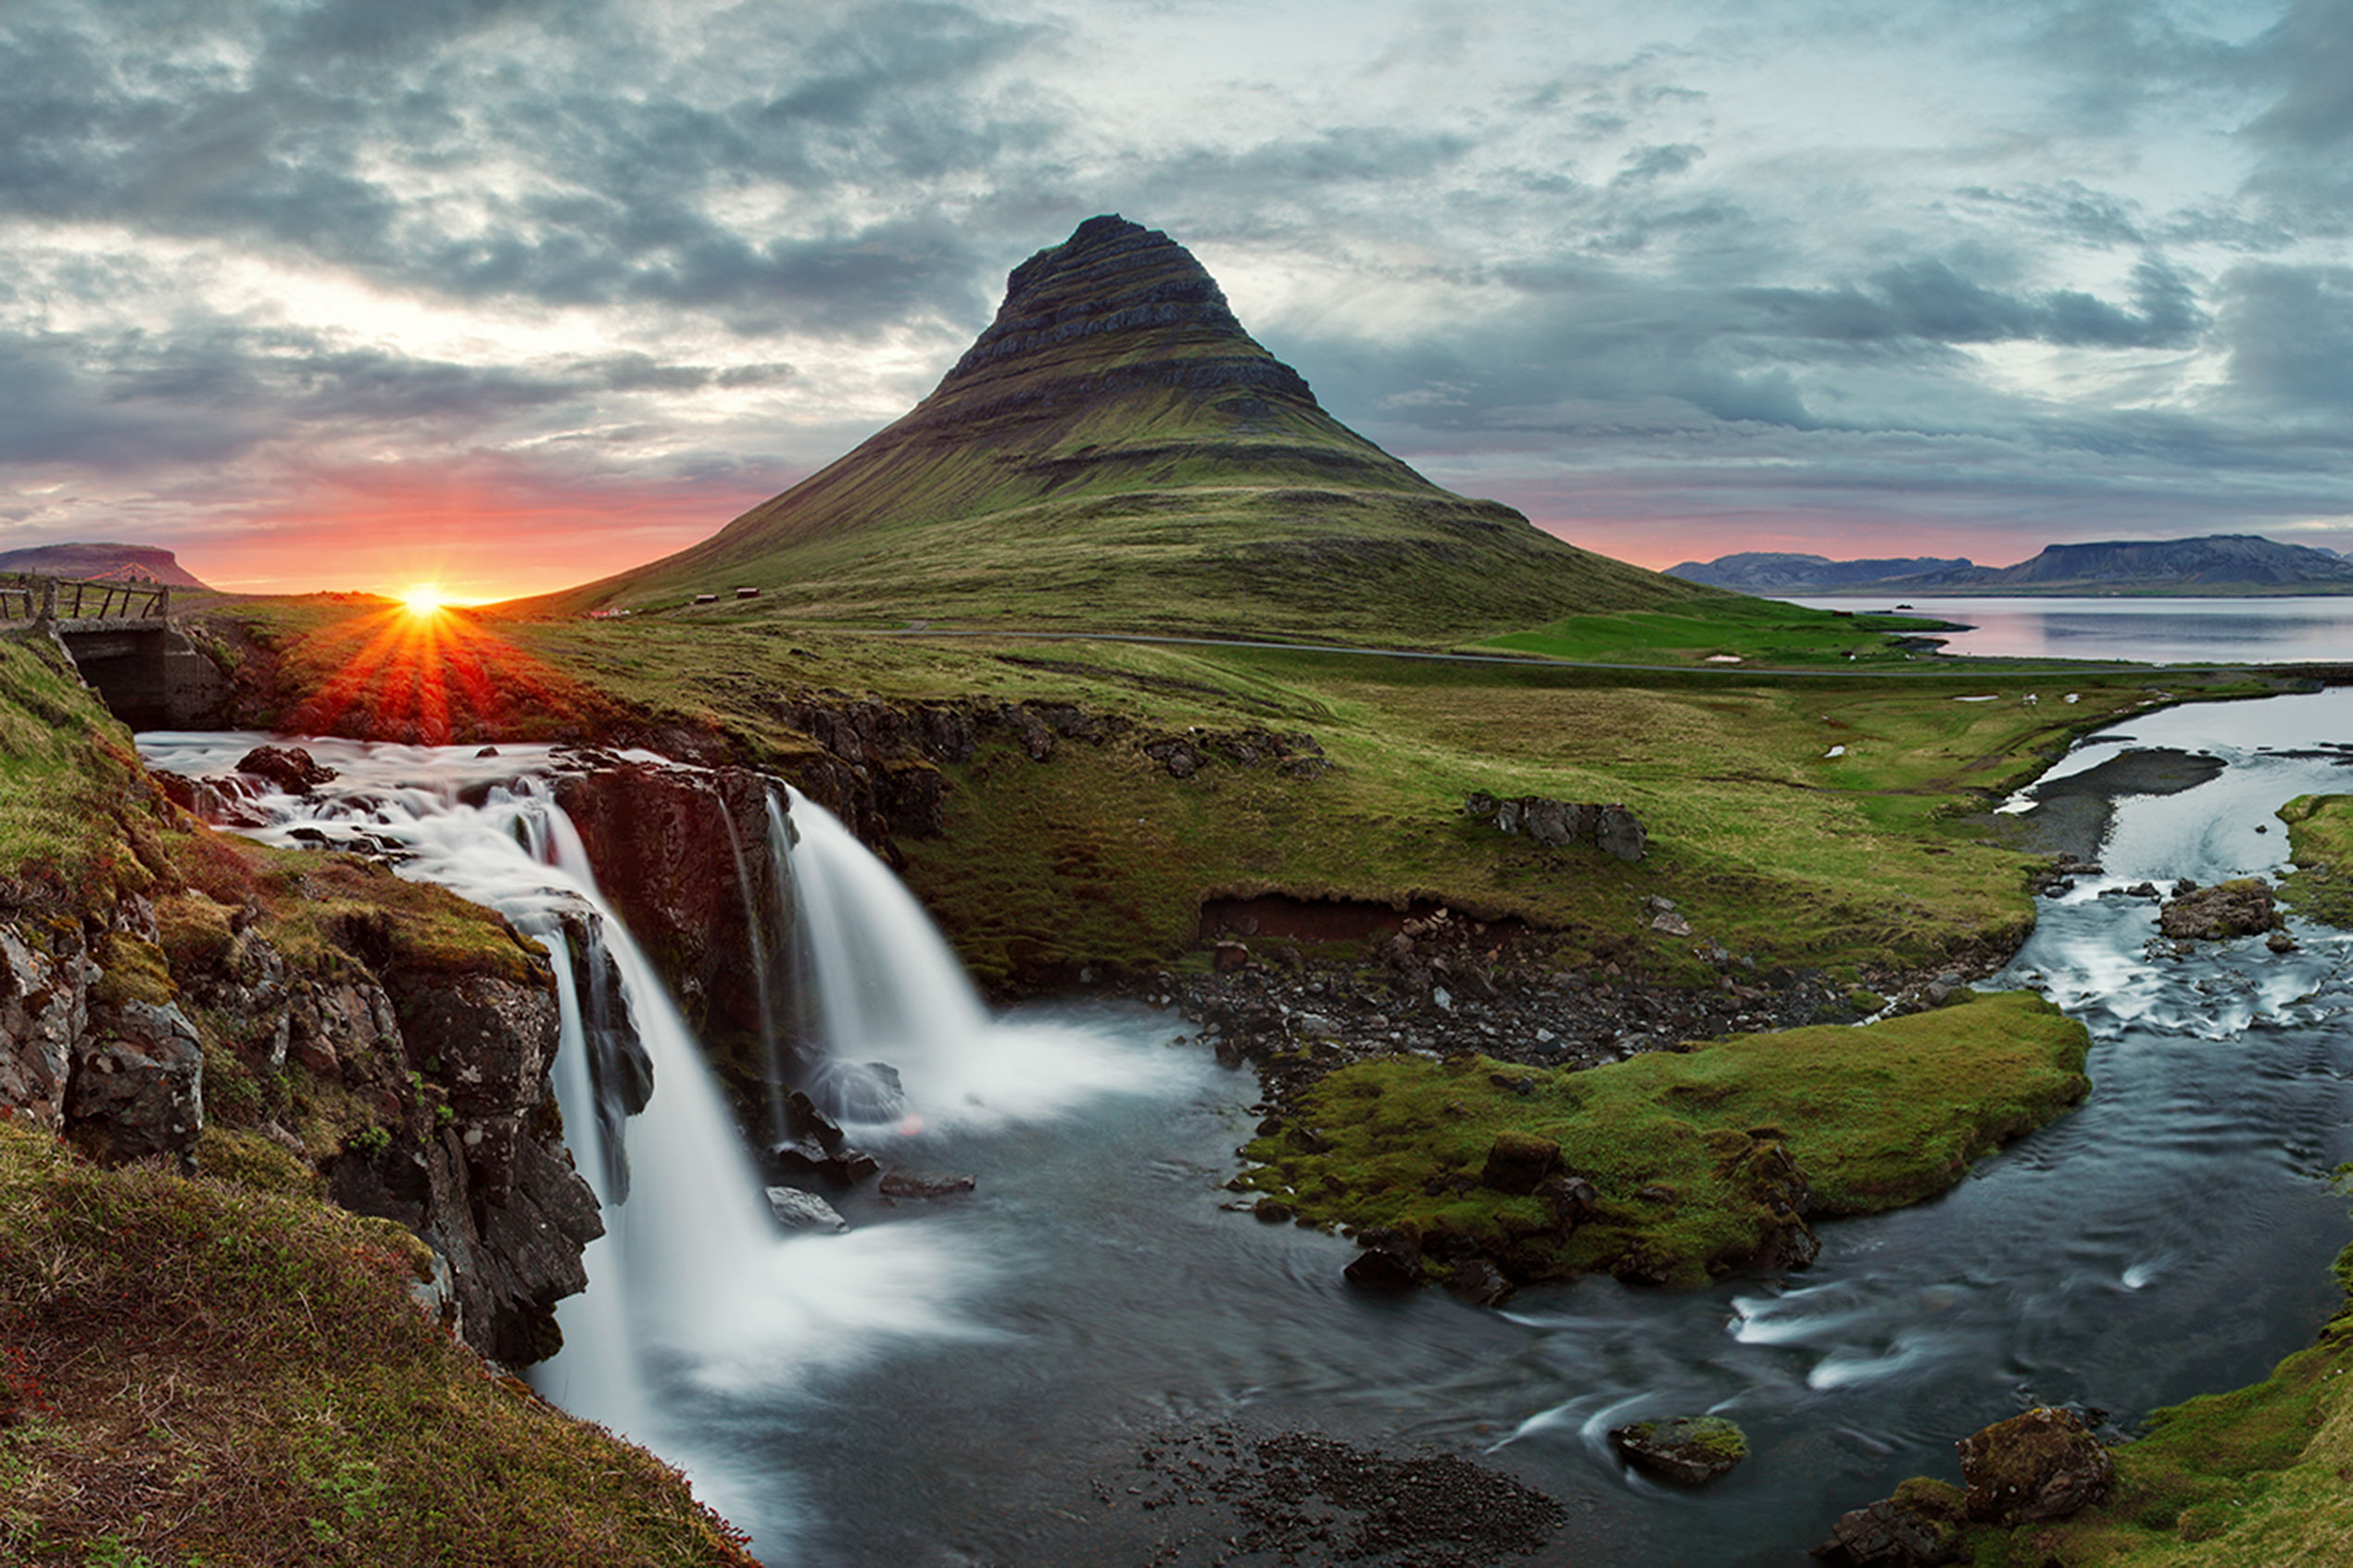 Kirkjufell and kirjufellsfoss waterfall pictured during the midnight sun with the sun setting just behind the mountain